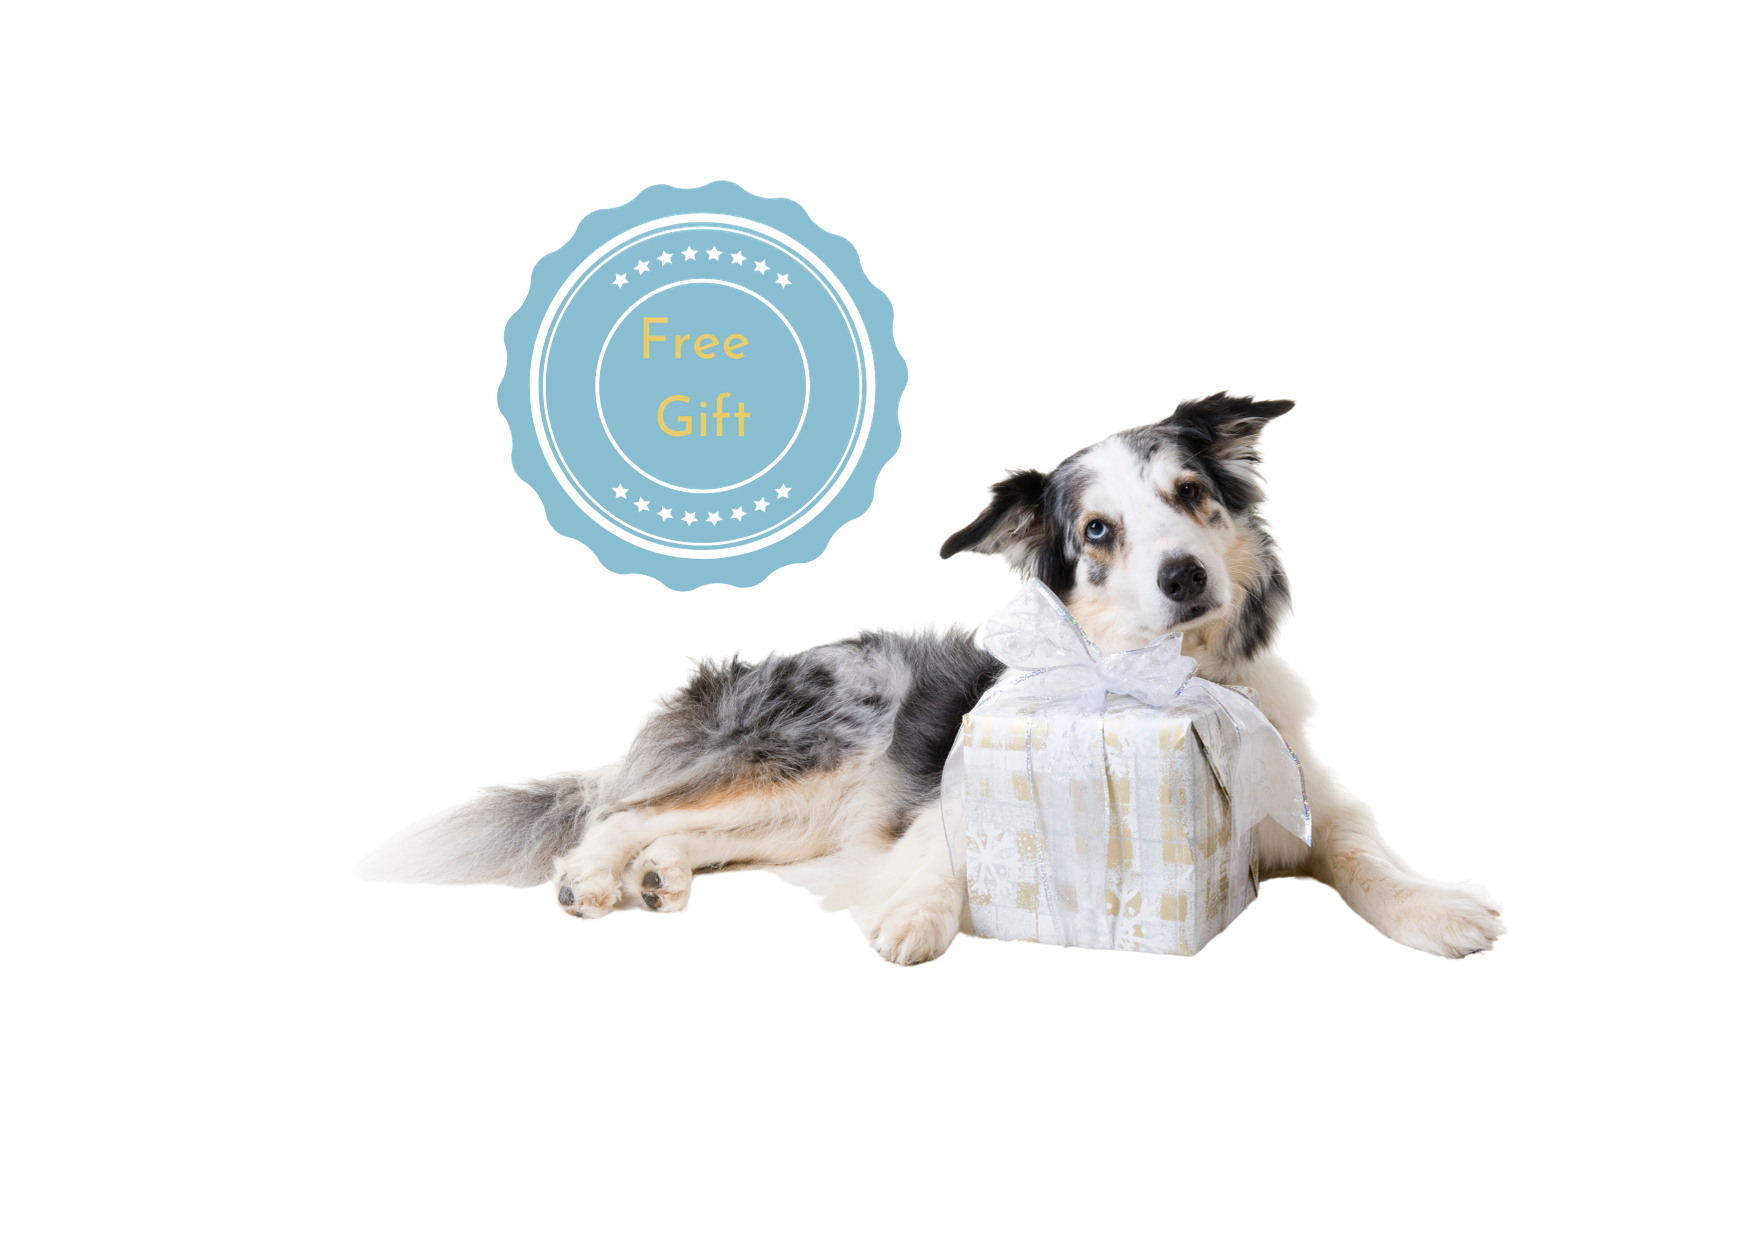 Pawsitive Thinking discount, pawsitivethinking voucher code